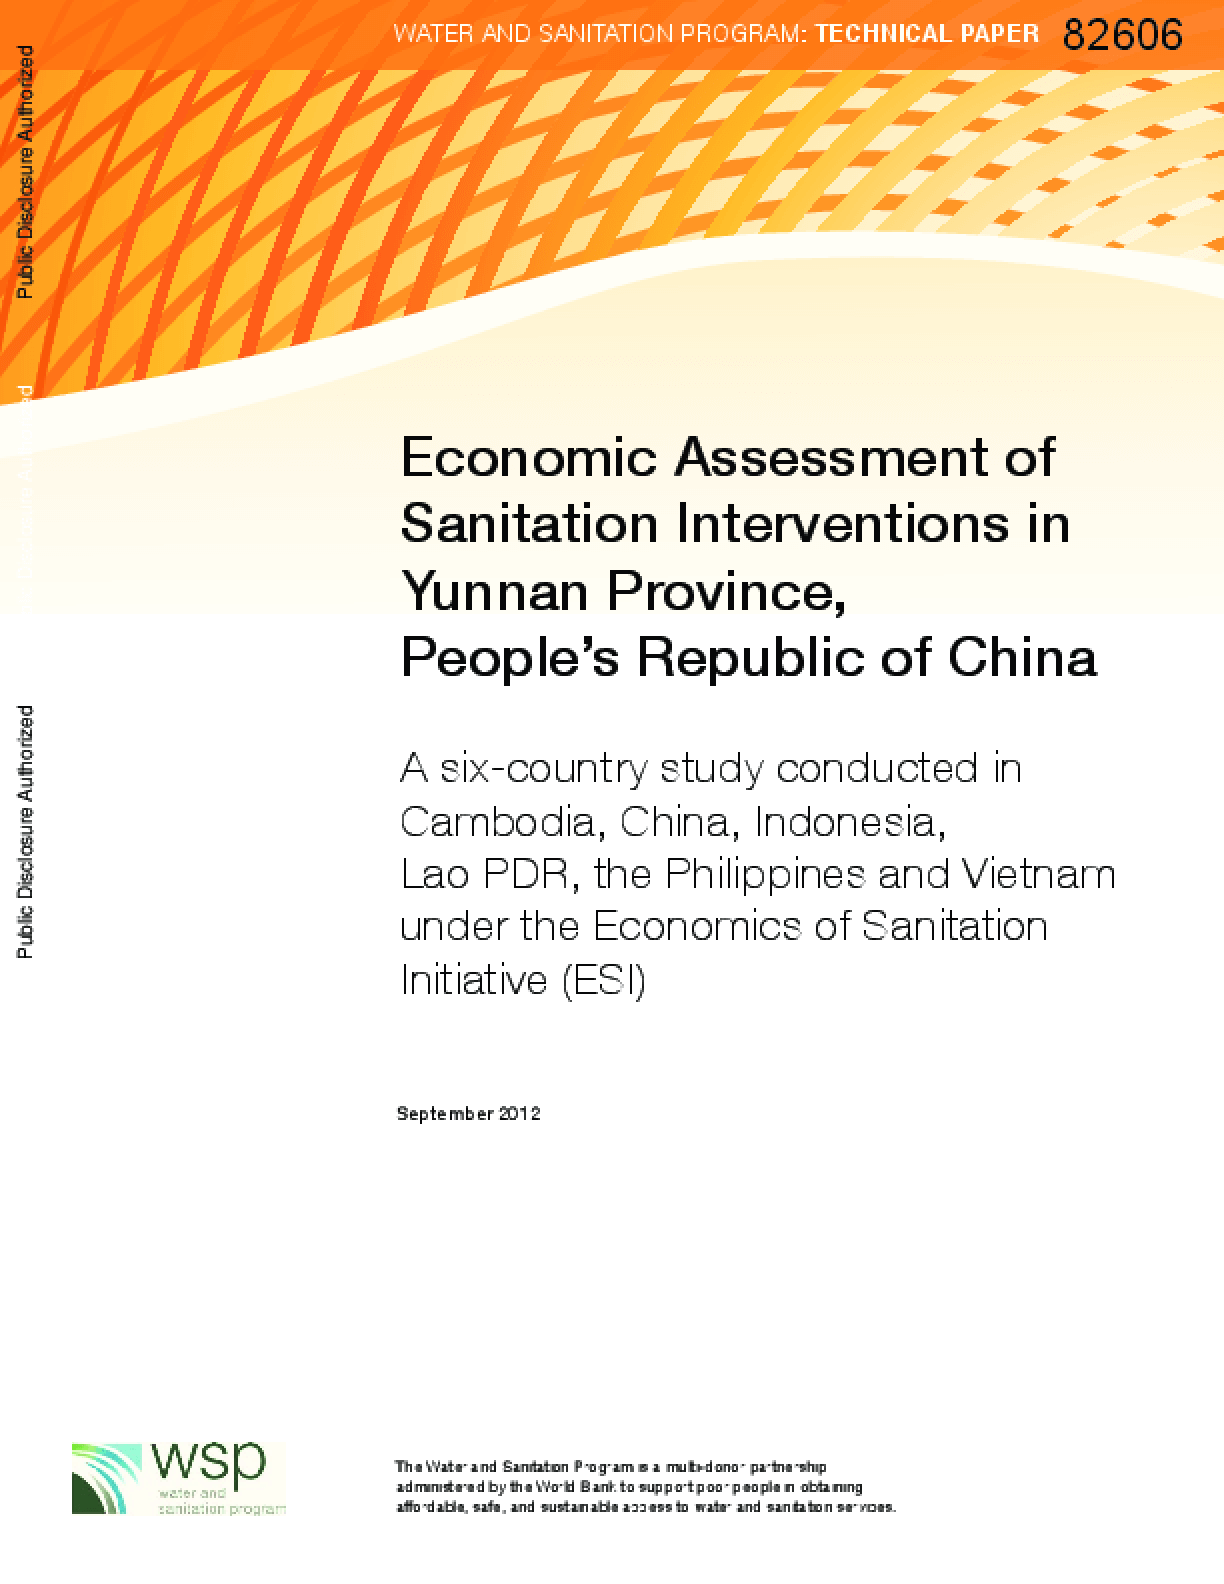 Economic Assessment of Sanitation Interventions in Yunnan Province, People's Republic of China